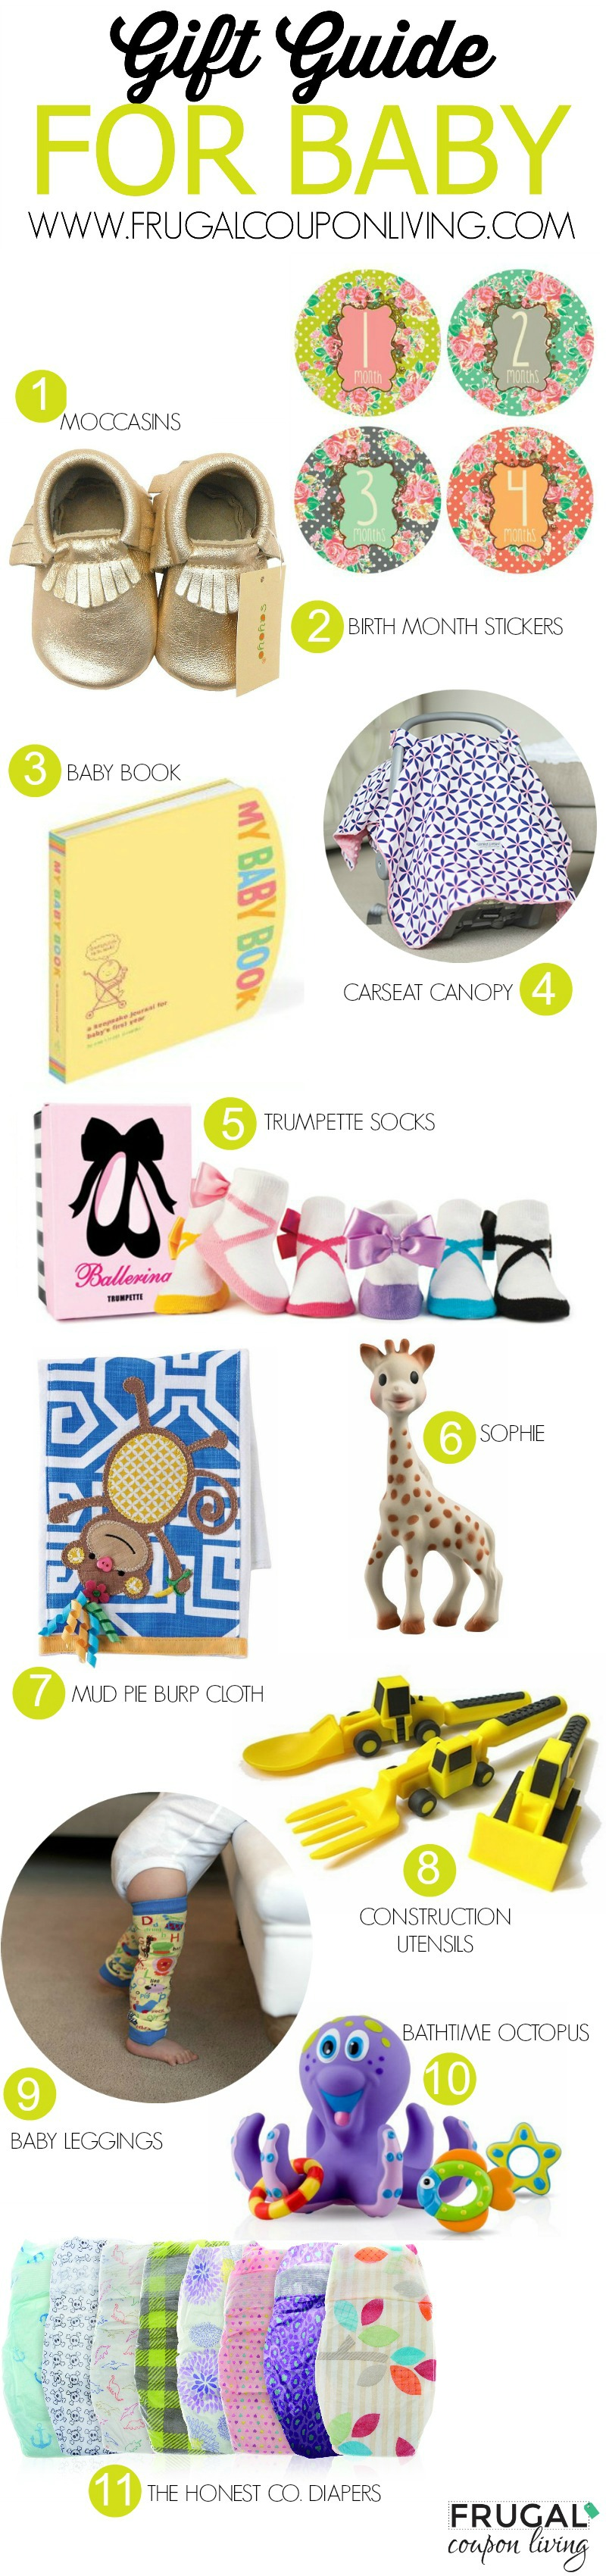 gift-guide-for-baby-final-frugal-coupon-living